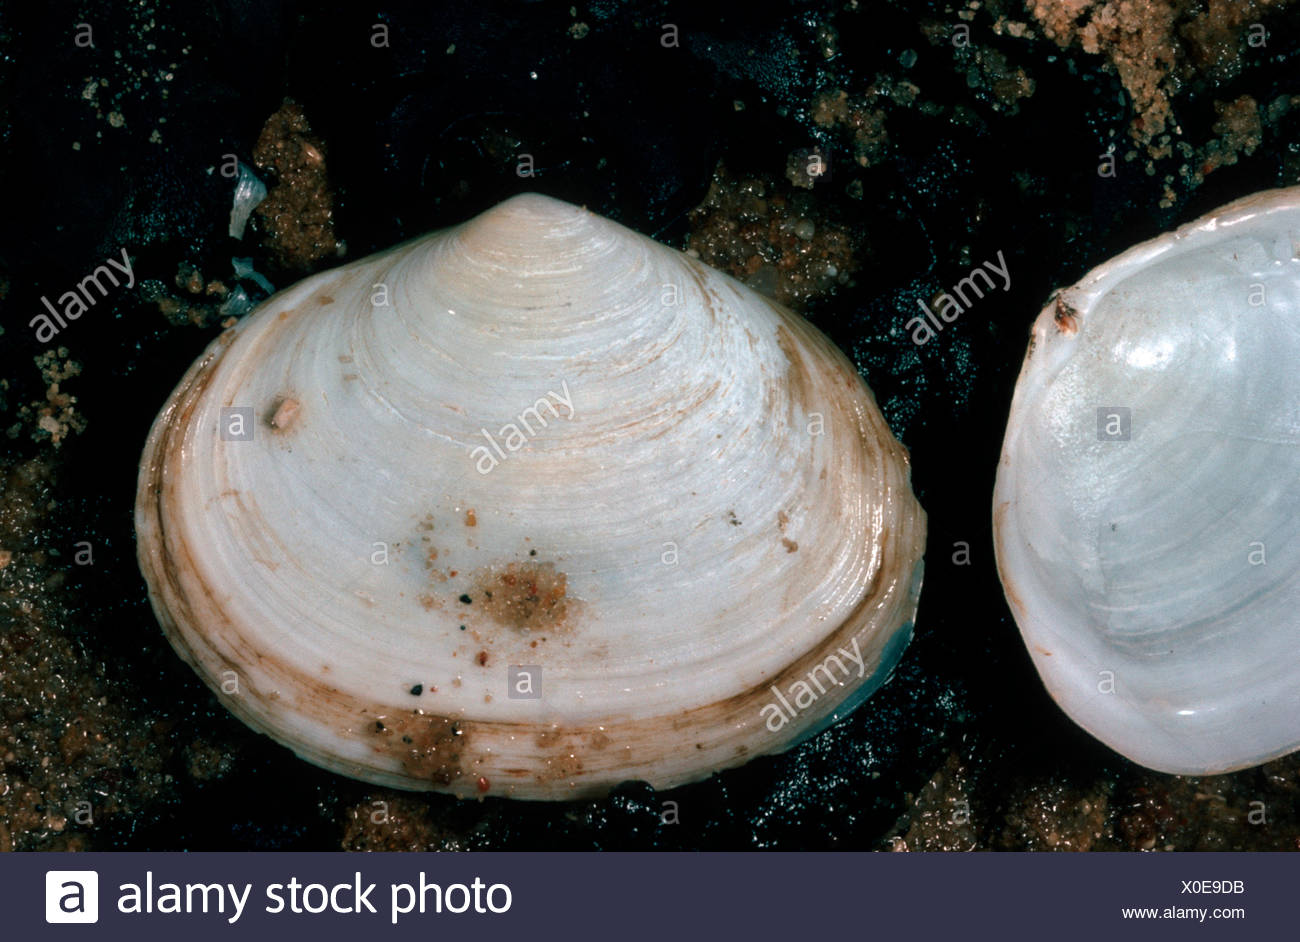 Peppery furrow clam, Peppery furrow shell (Scrobicularia plana), shells on moist ground Stock Photo